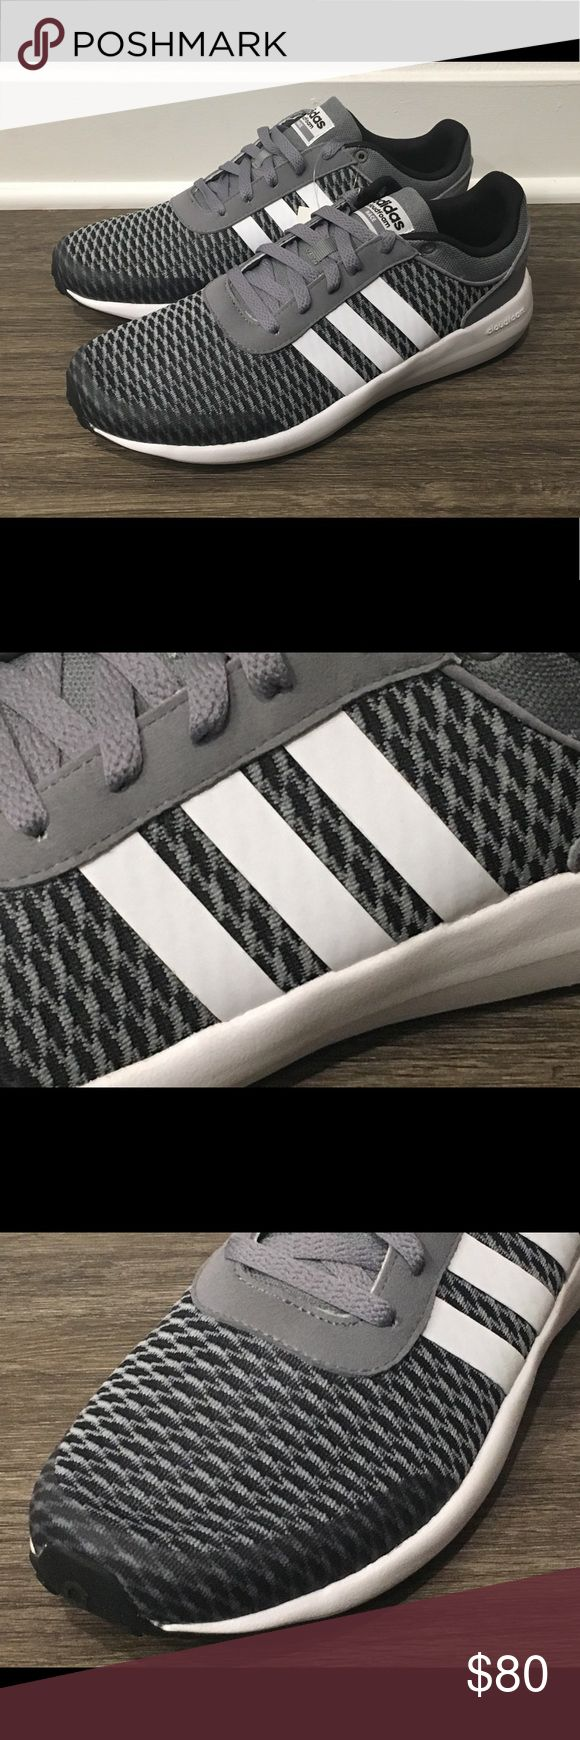 Adidas Running shoes- size 10 New with box Light weight Simple and elegant design Trainer adidas Shoes Sneakers